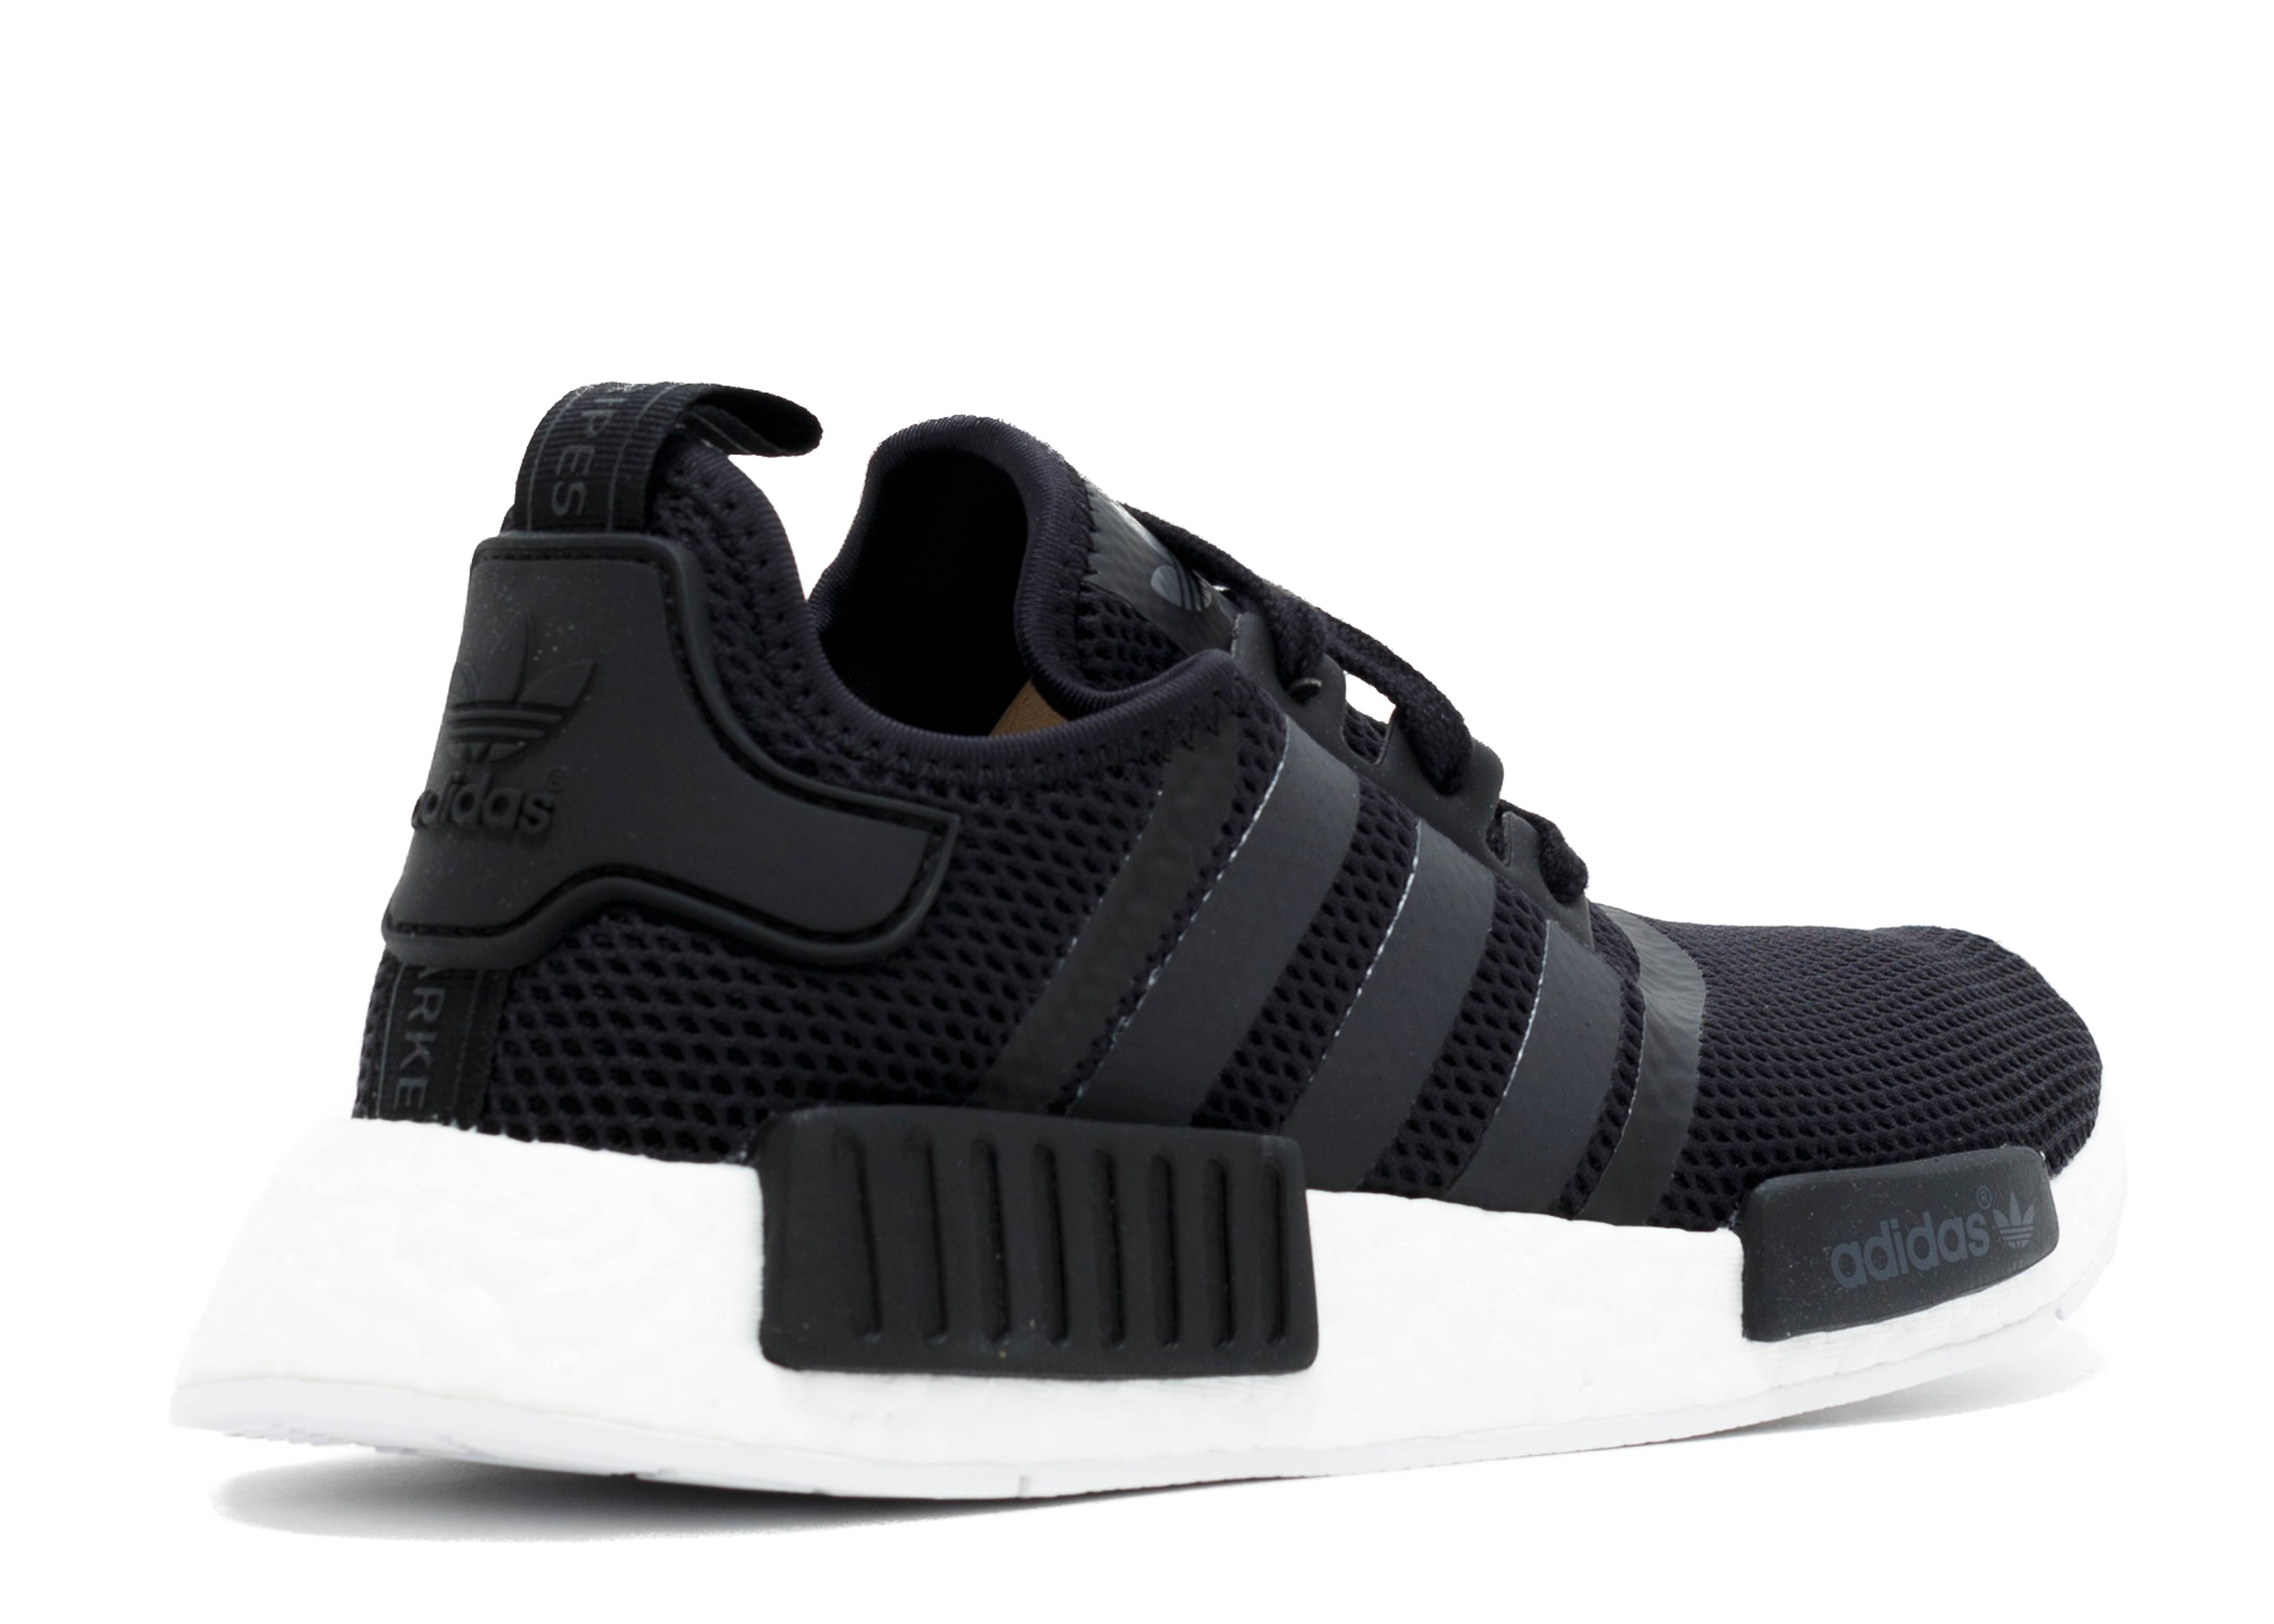 Adidas Nmd R1 Black White Red